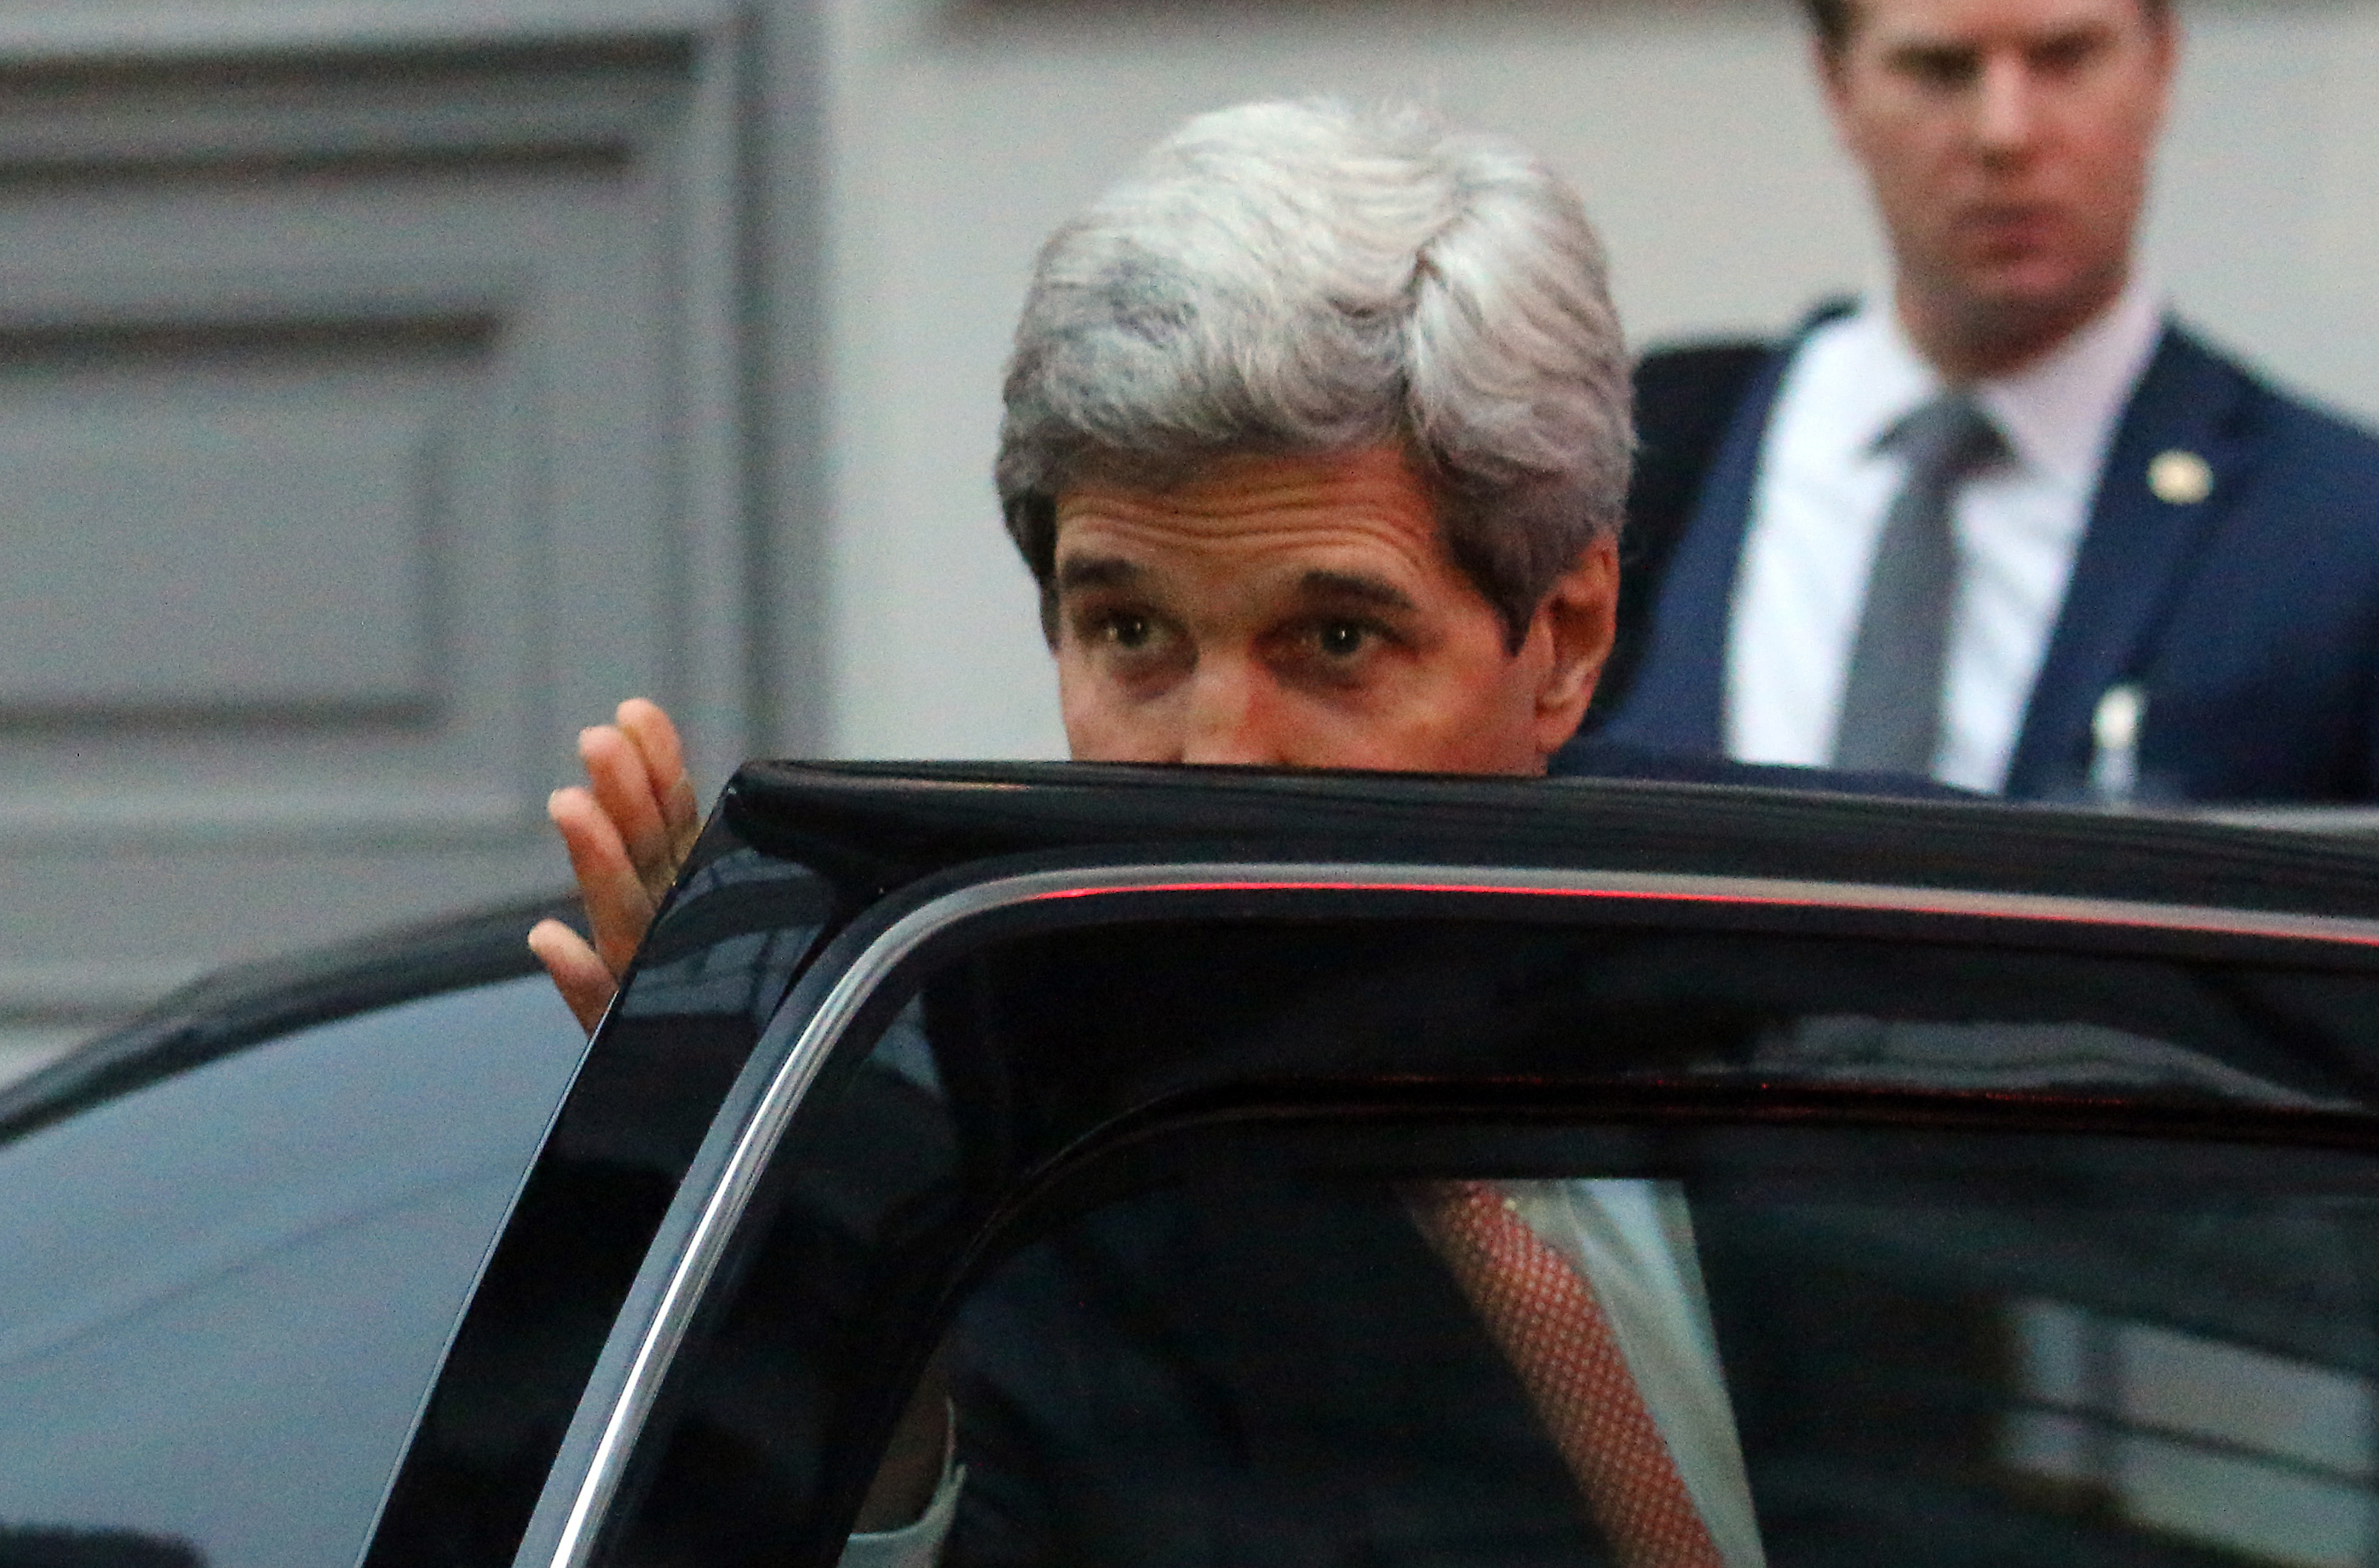 Profiles in Treason: John Kerry – This Traitor Teamed With 'Death To America' Mullahs While Turning His Back On America